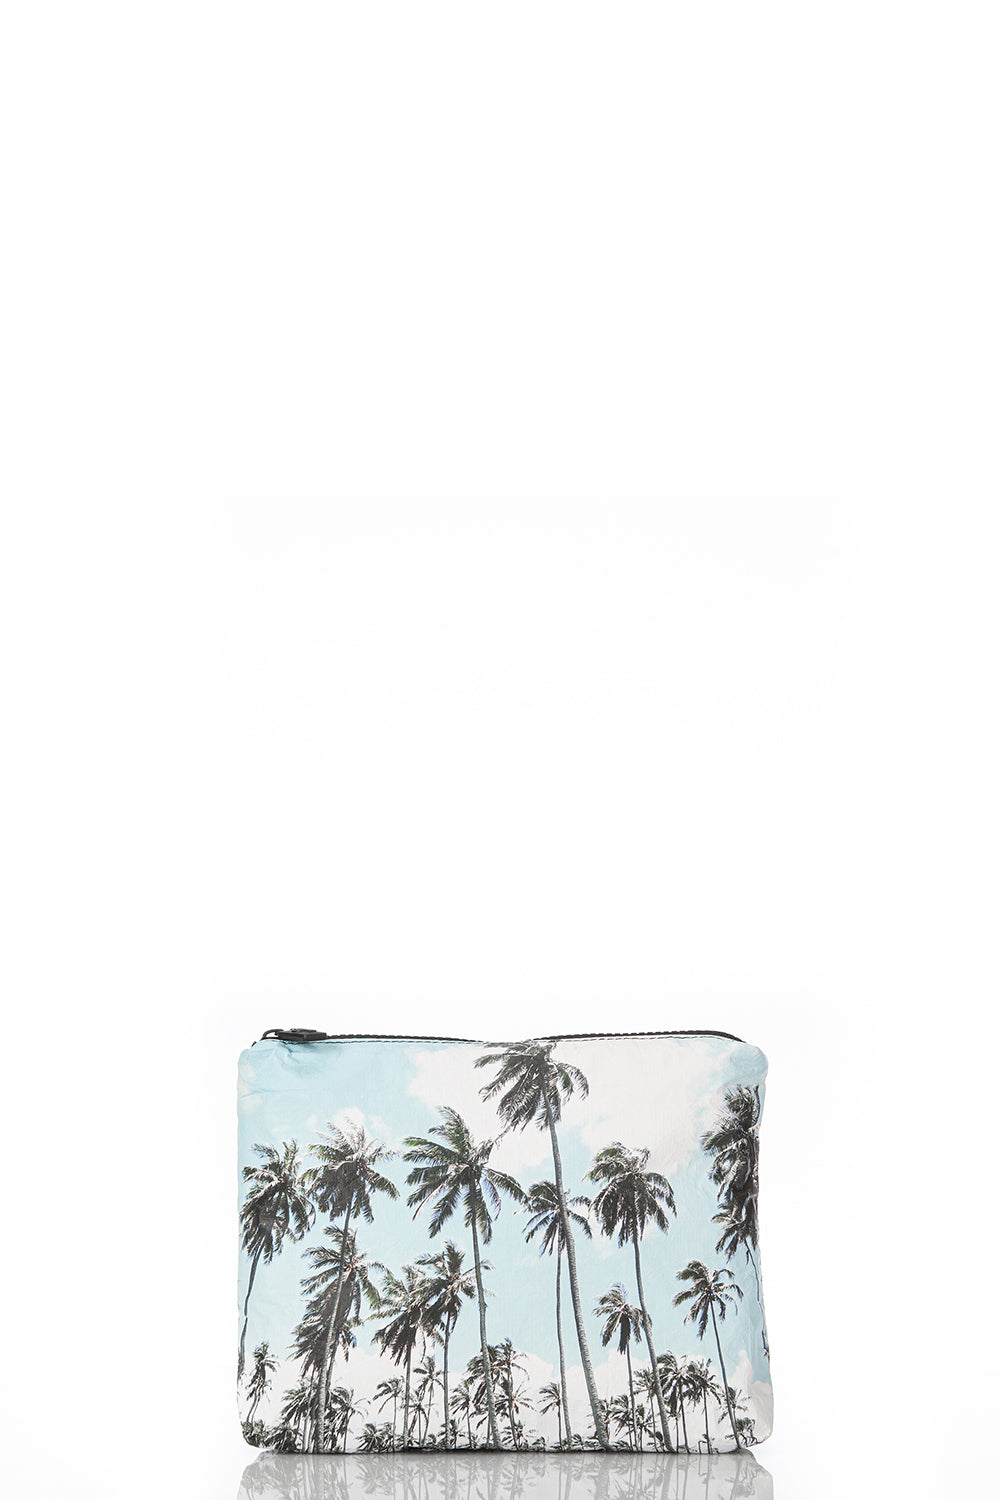 ALOHA Collection Small Samudra Kapa'a Pouch